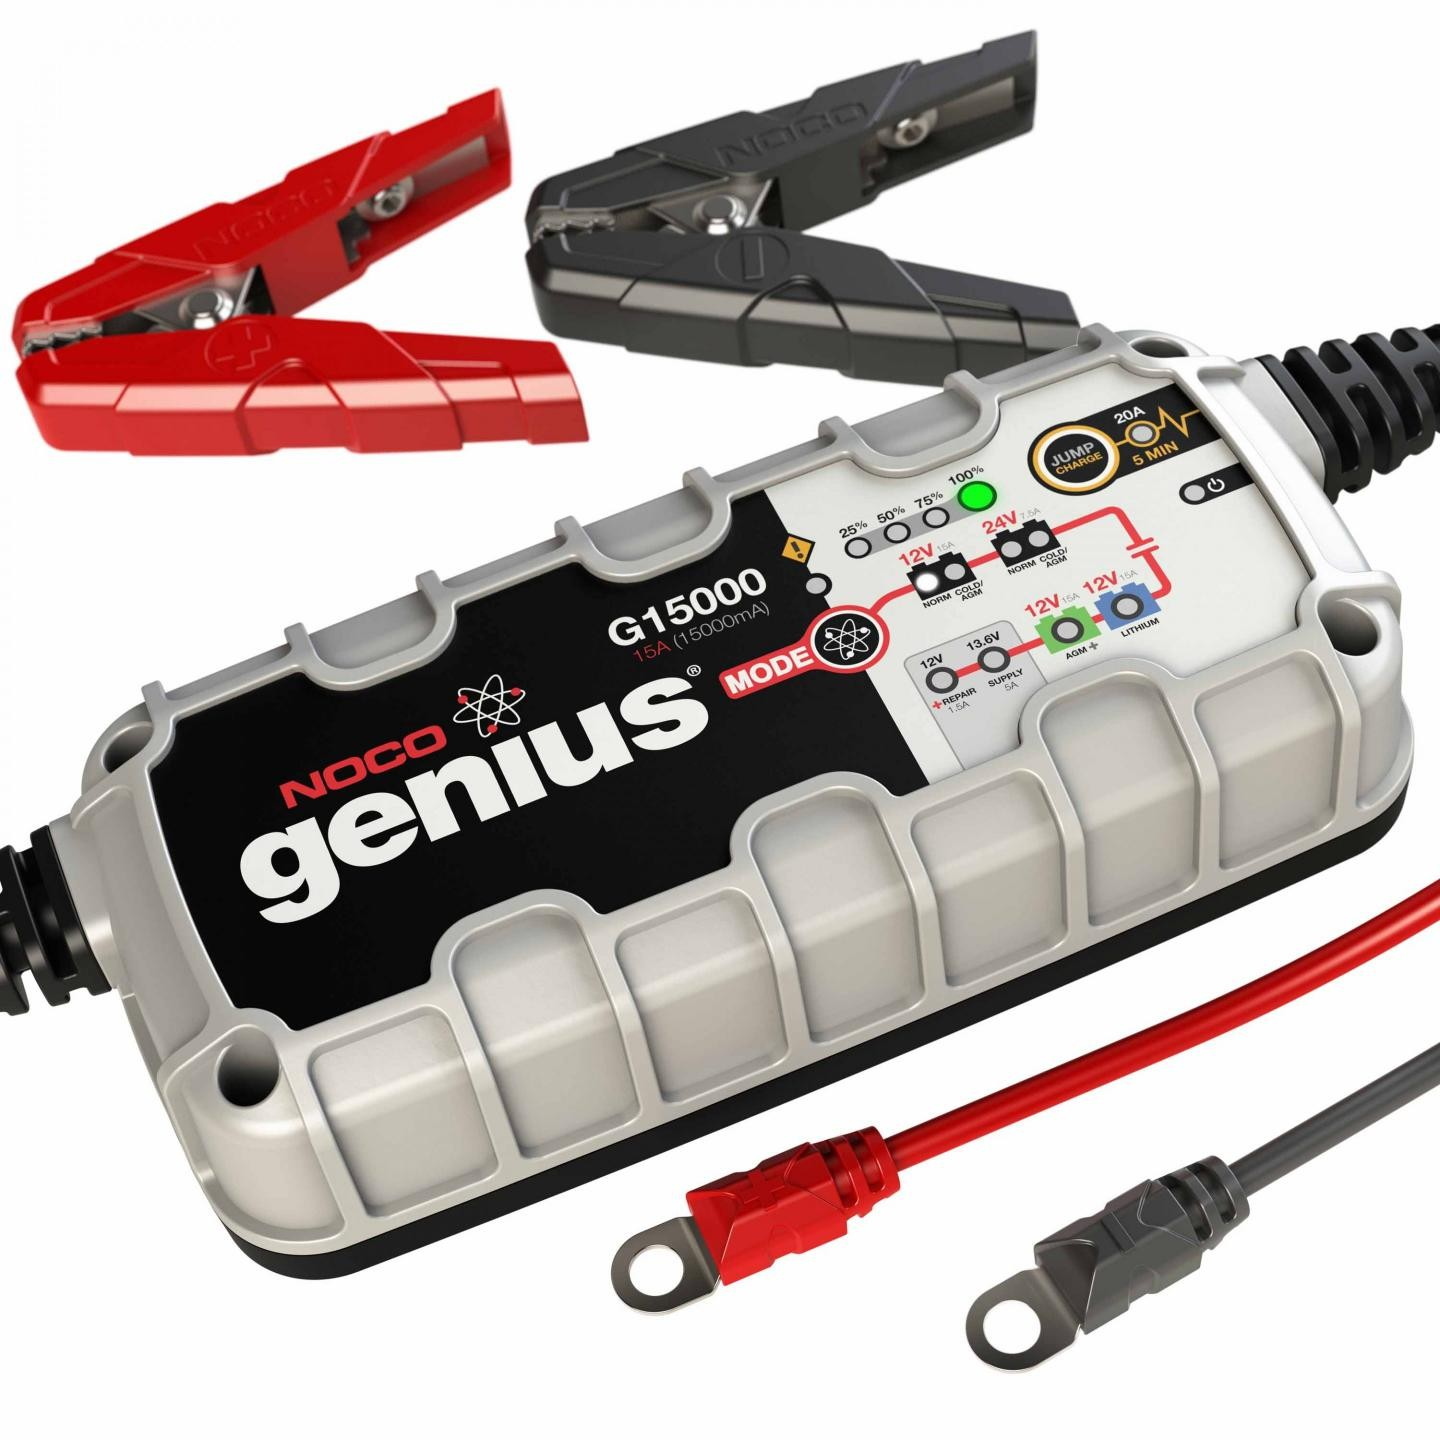 Noco 15a Battery Charger With Engine Start G15000